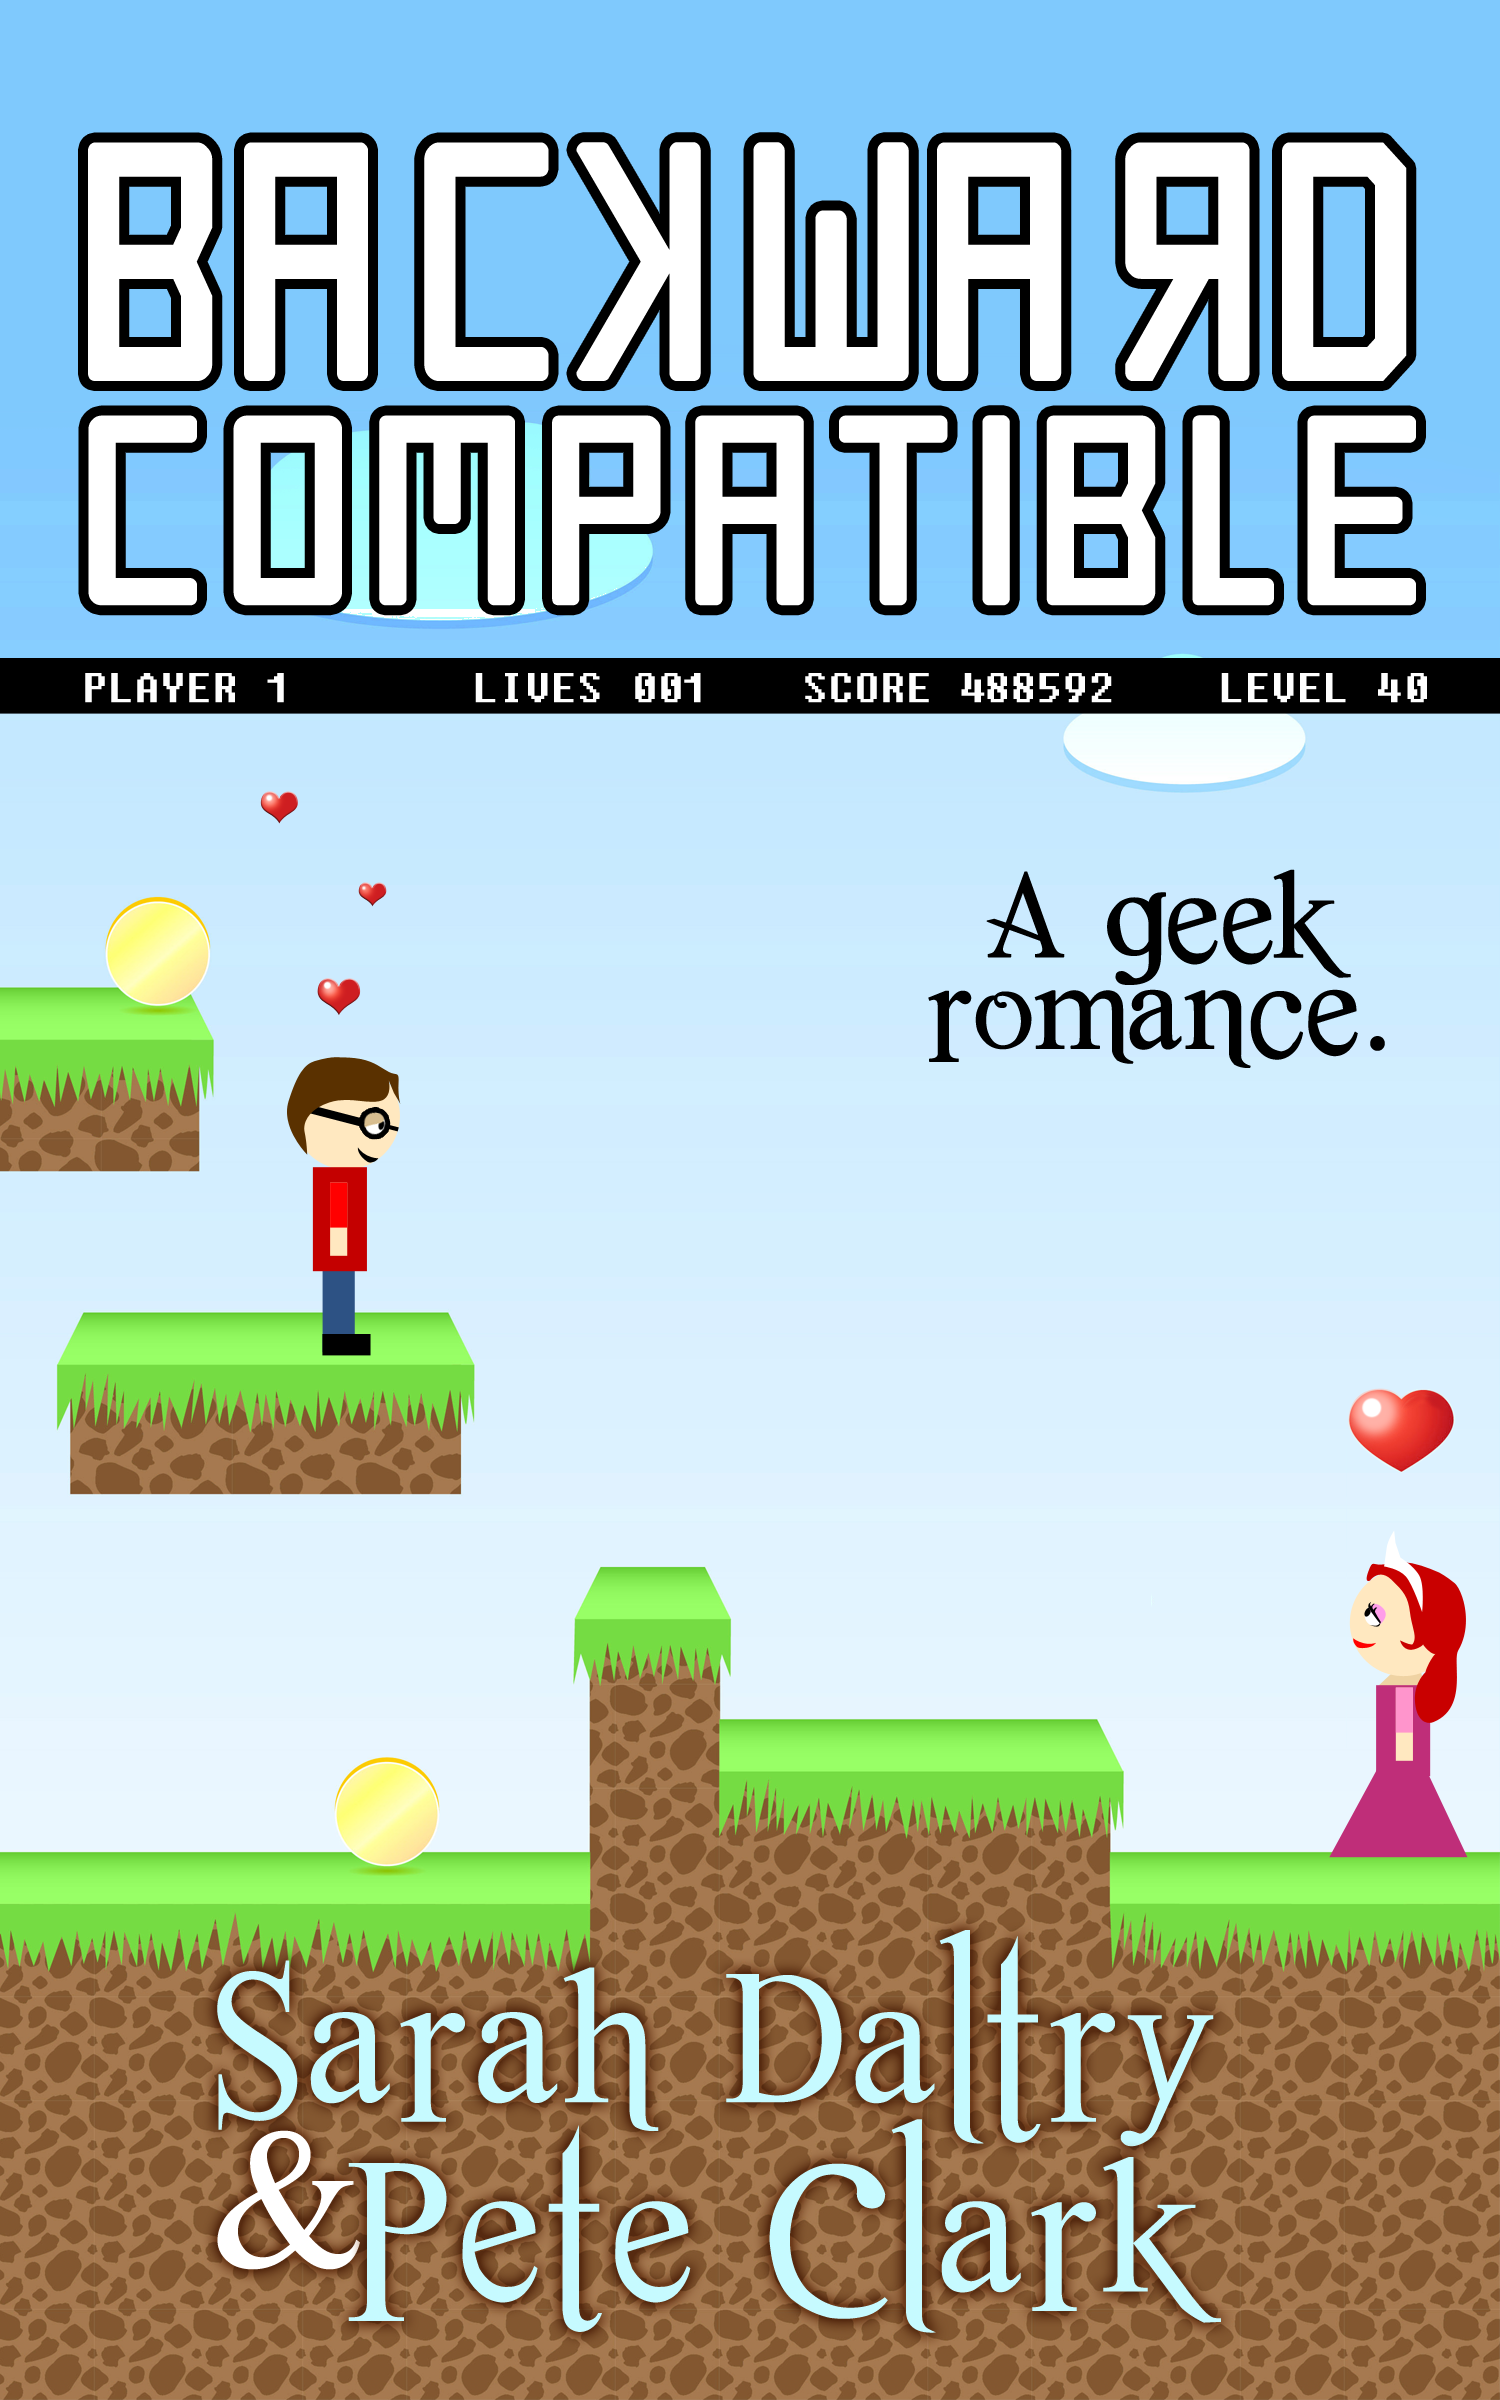 Sarah Daltry - Backward Compatible: A Gamer Geek Love Story